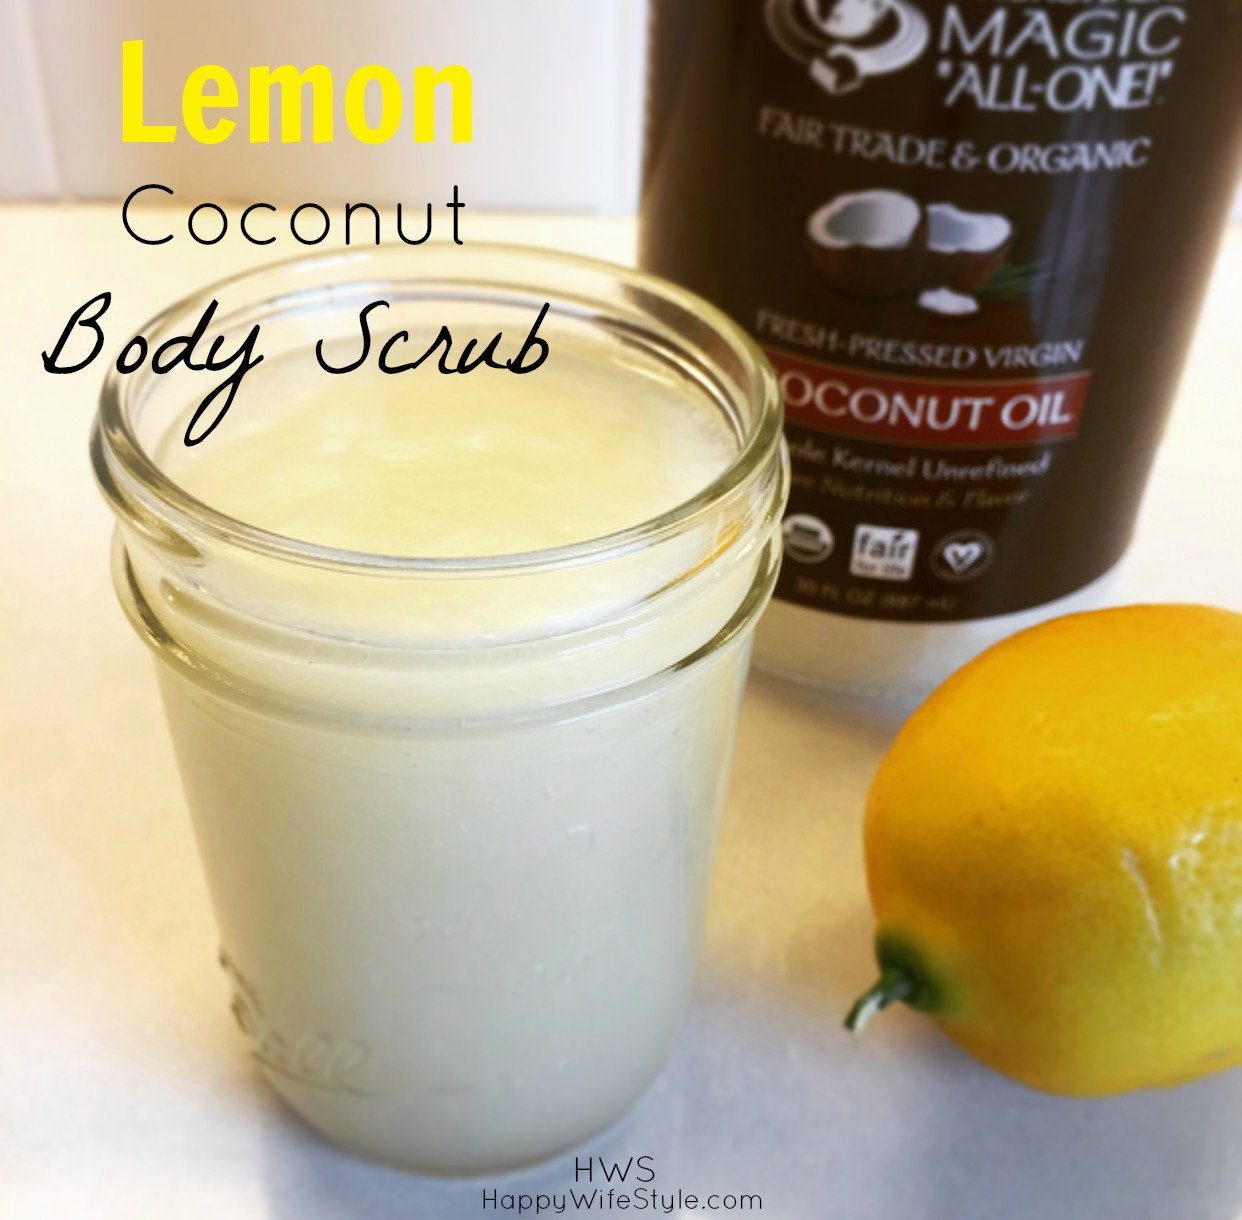 lemon_coconut_body_scrub